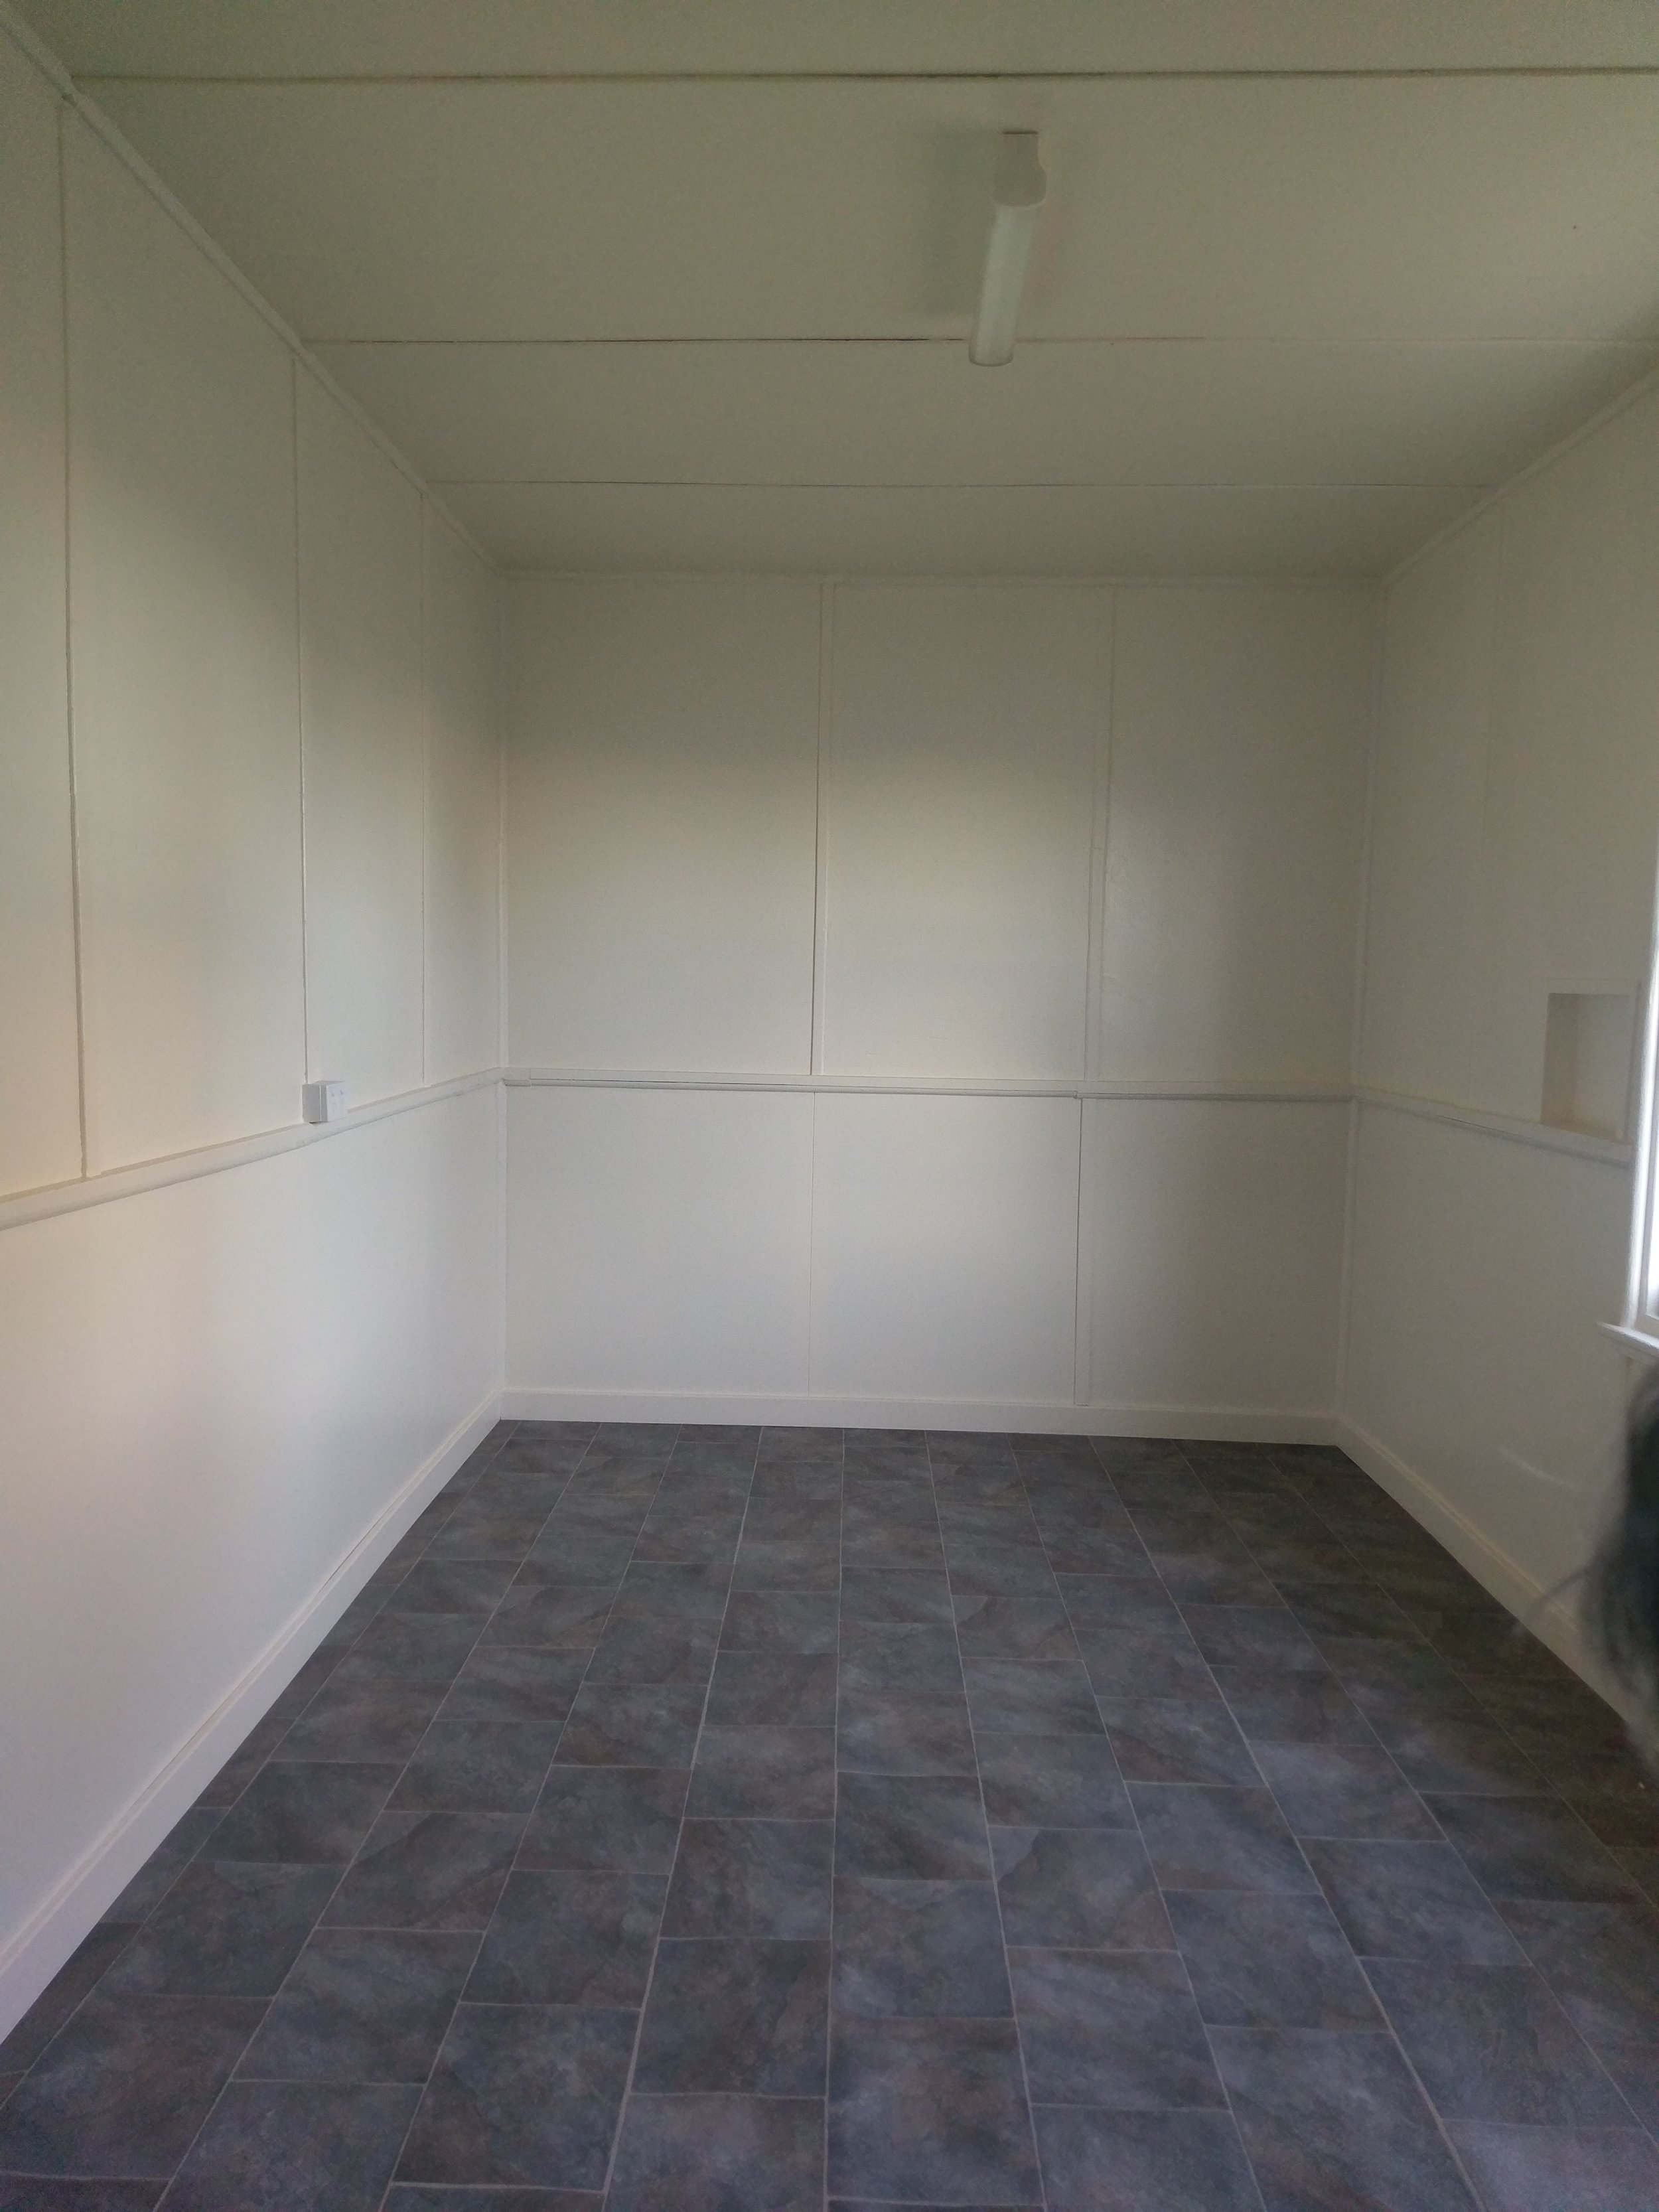 What the room looked like after all the work was completed